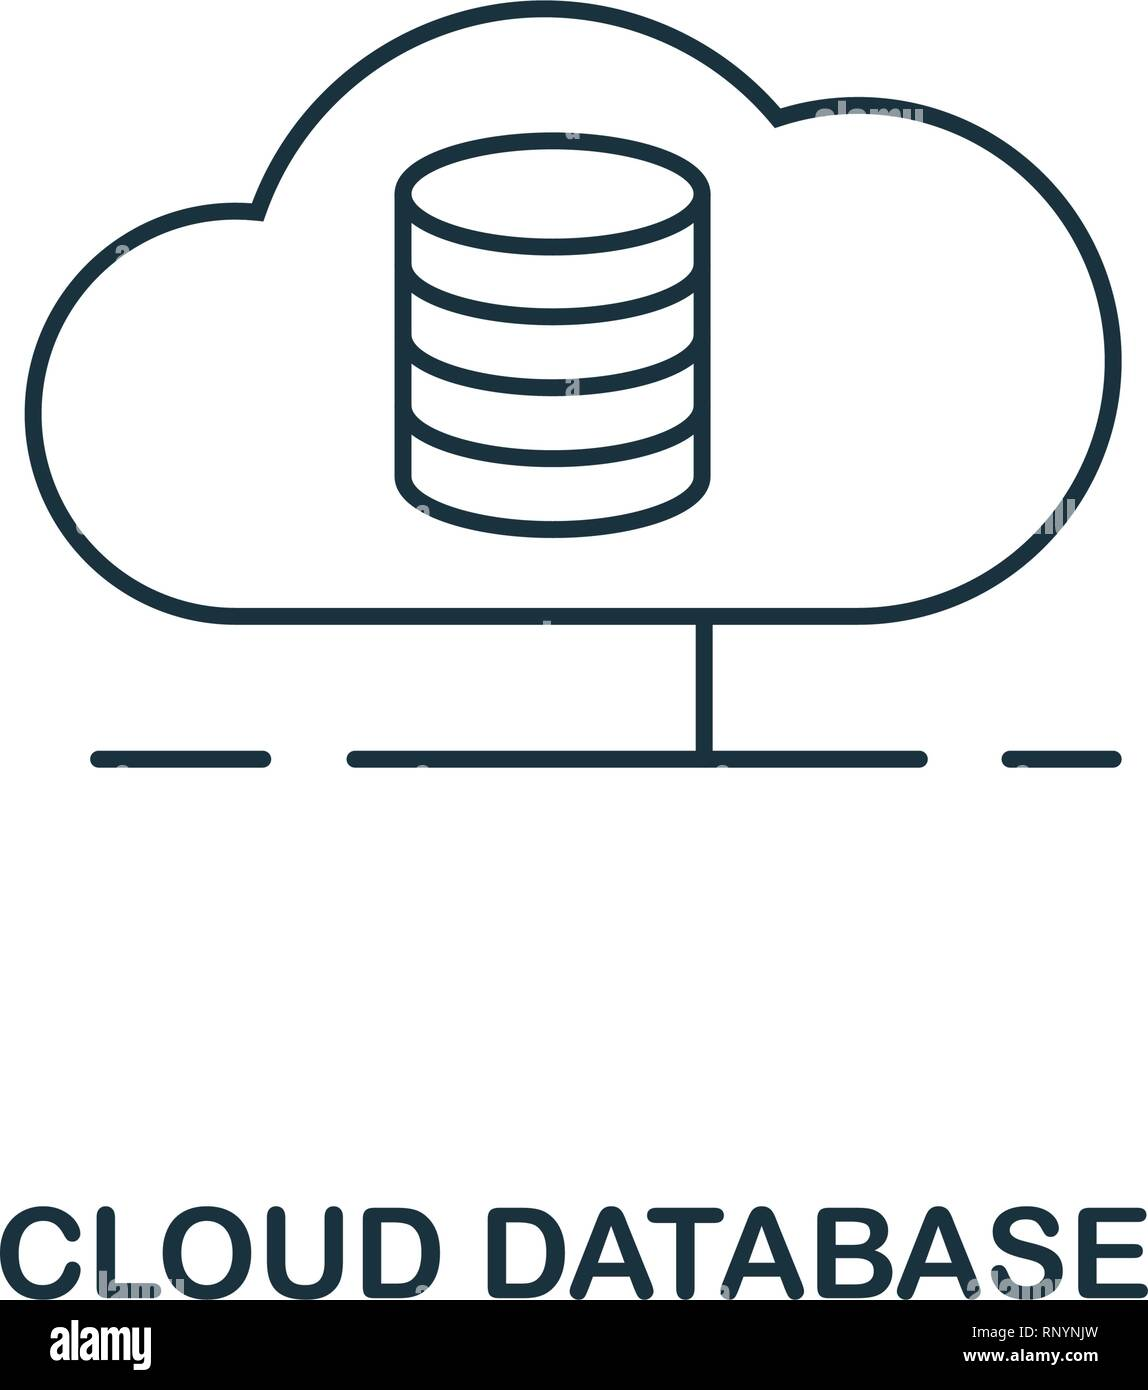 Cloud Database outline icon  Thin line style from big data